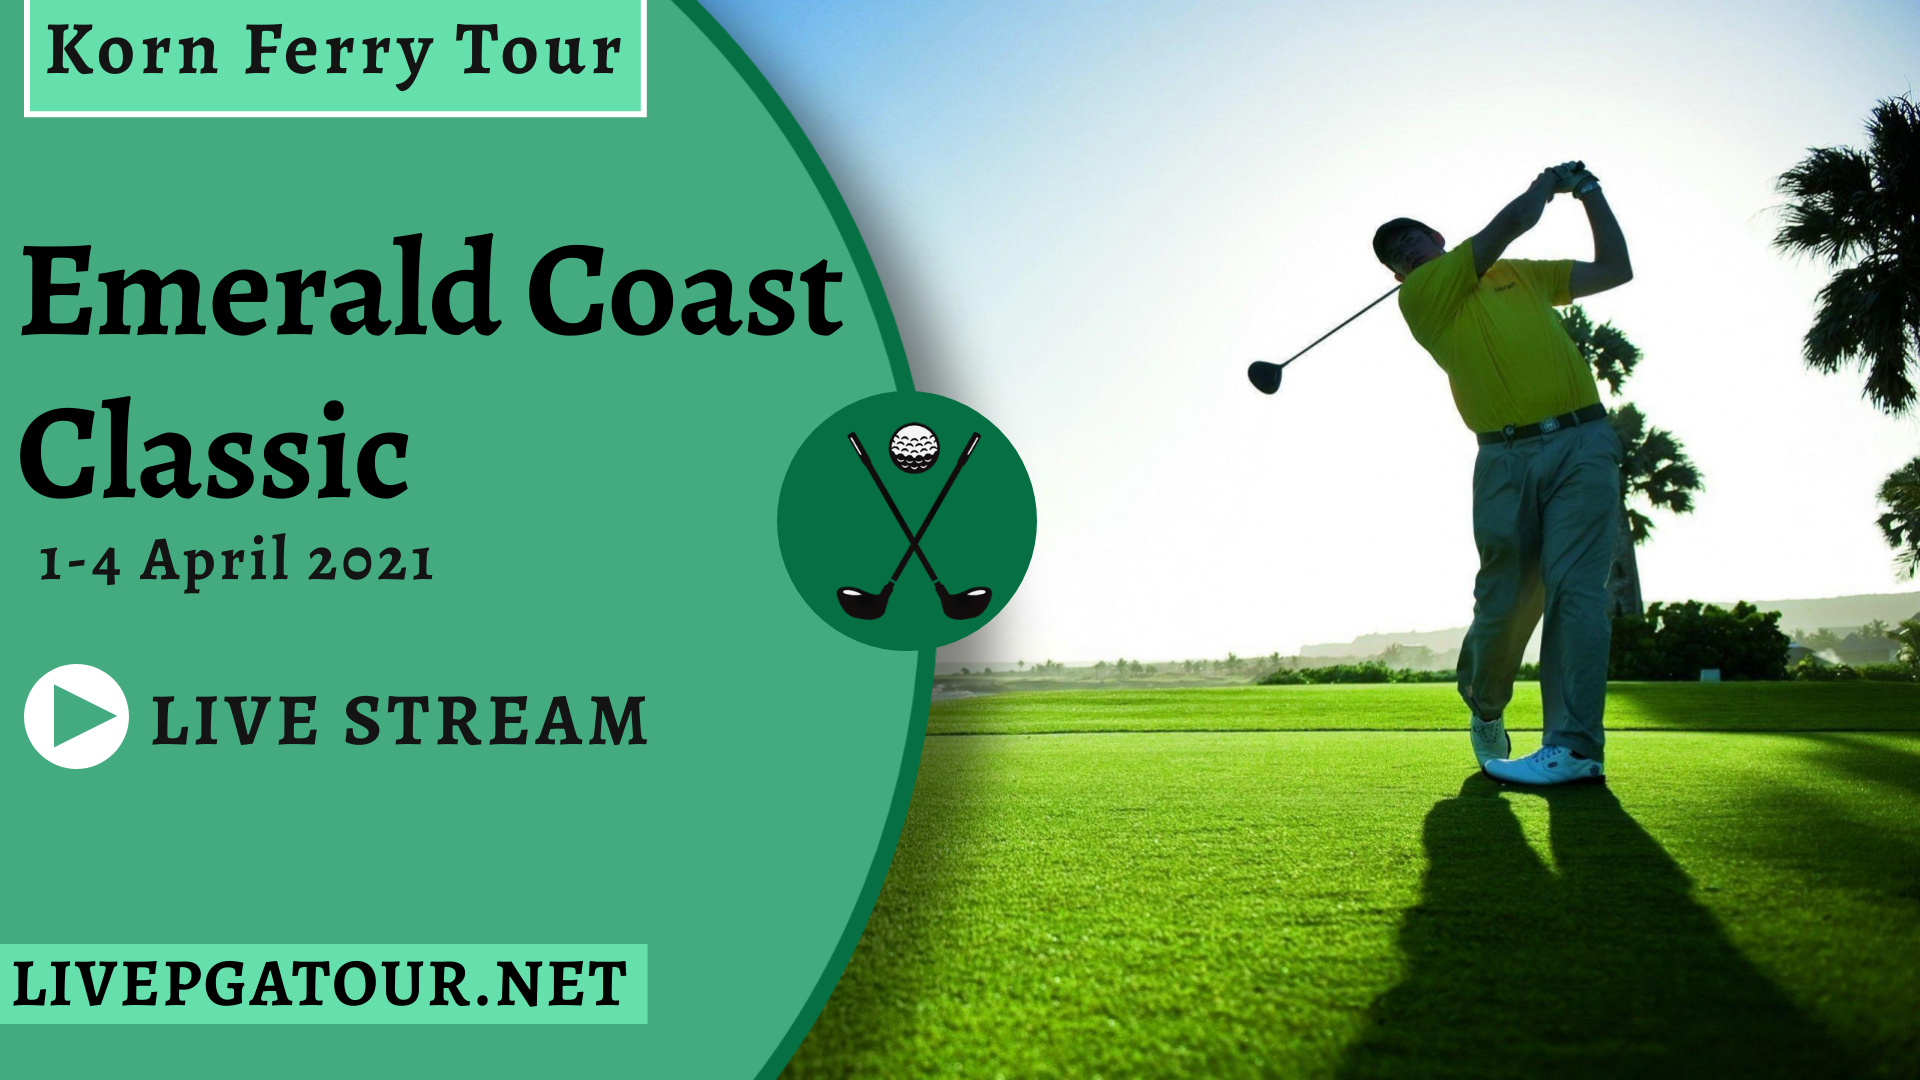 Emerald Coast Classic Live Stream 2021: Korn Ferry Tour Day 1